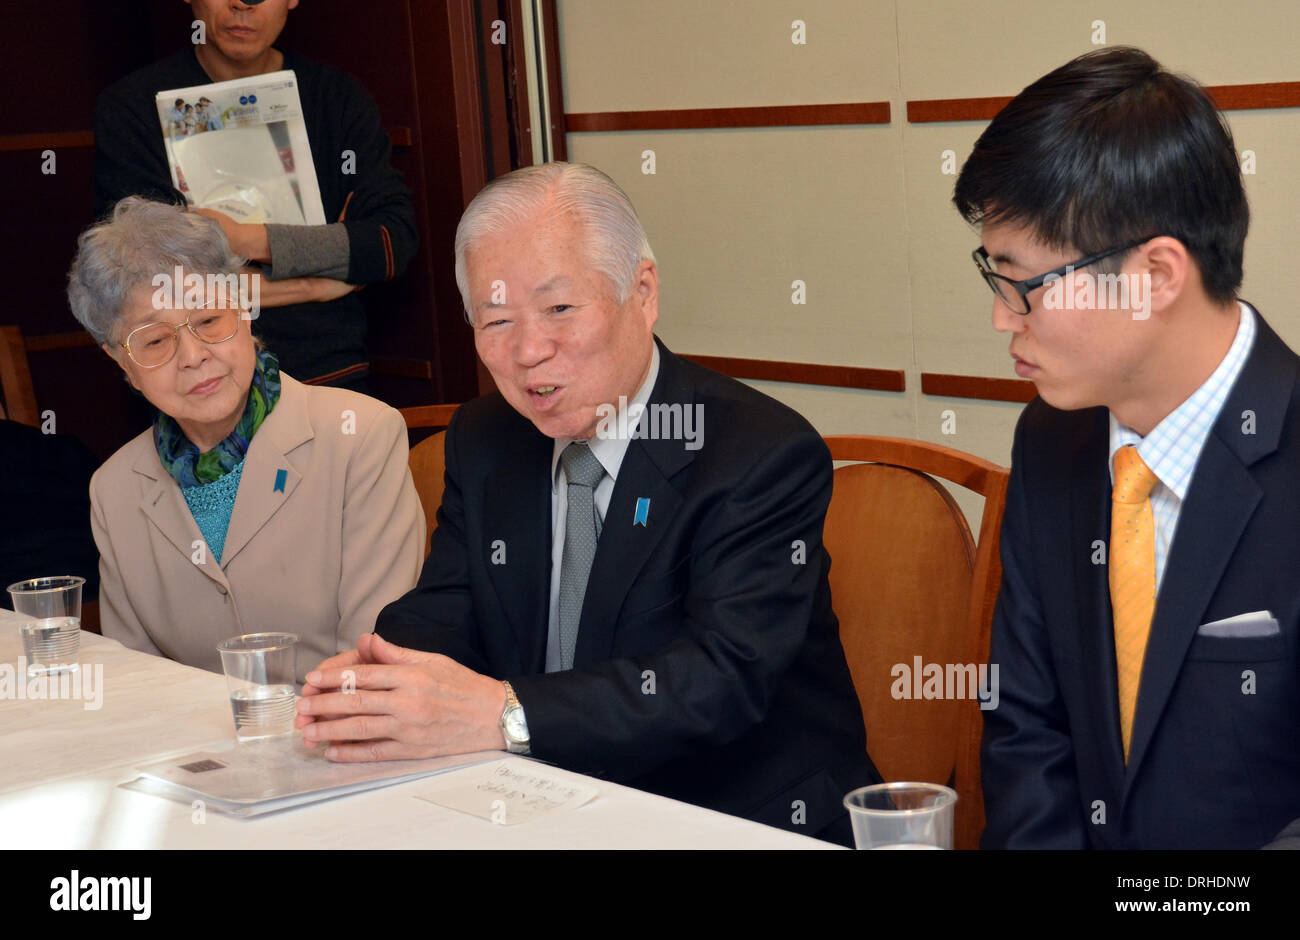 Tokyo, Japan. 27th Jan, 2014. North Korean defector Shin Dong-hyuk, right, and Shigeru and Sakie Yokota, parents of Japanese abductee Megumi Yokota, meet Japanese media before Shin speaks about his life at a North Korean concentration camp in a news conference at Tokyo Foreign Correspondents Club of Japan on Monday, January 27, 2014. Shin, now 32, was born in the notorious Camp 14 and forced to work for years leading to the day when he managed to escape in 2005. In North Koreas so-called total control zones, Shin said, inmates are forced to work till they die and children are not even educa - Stock Image